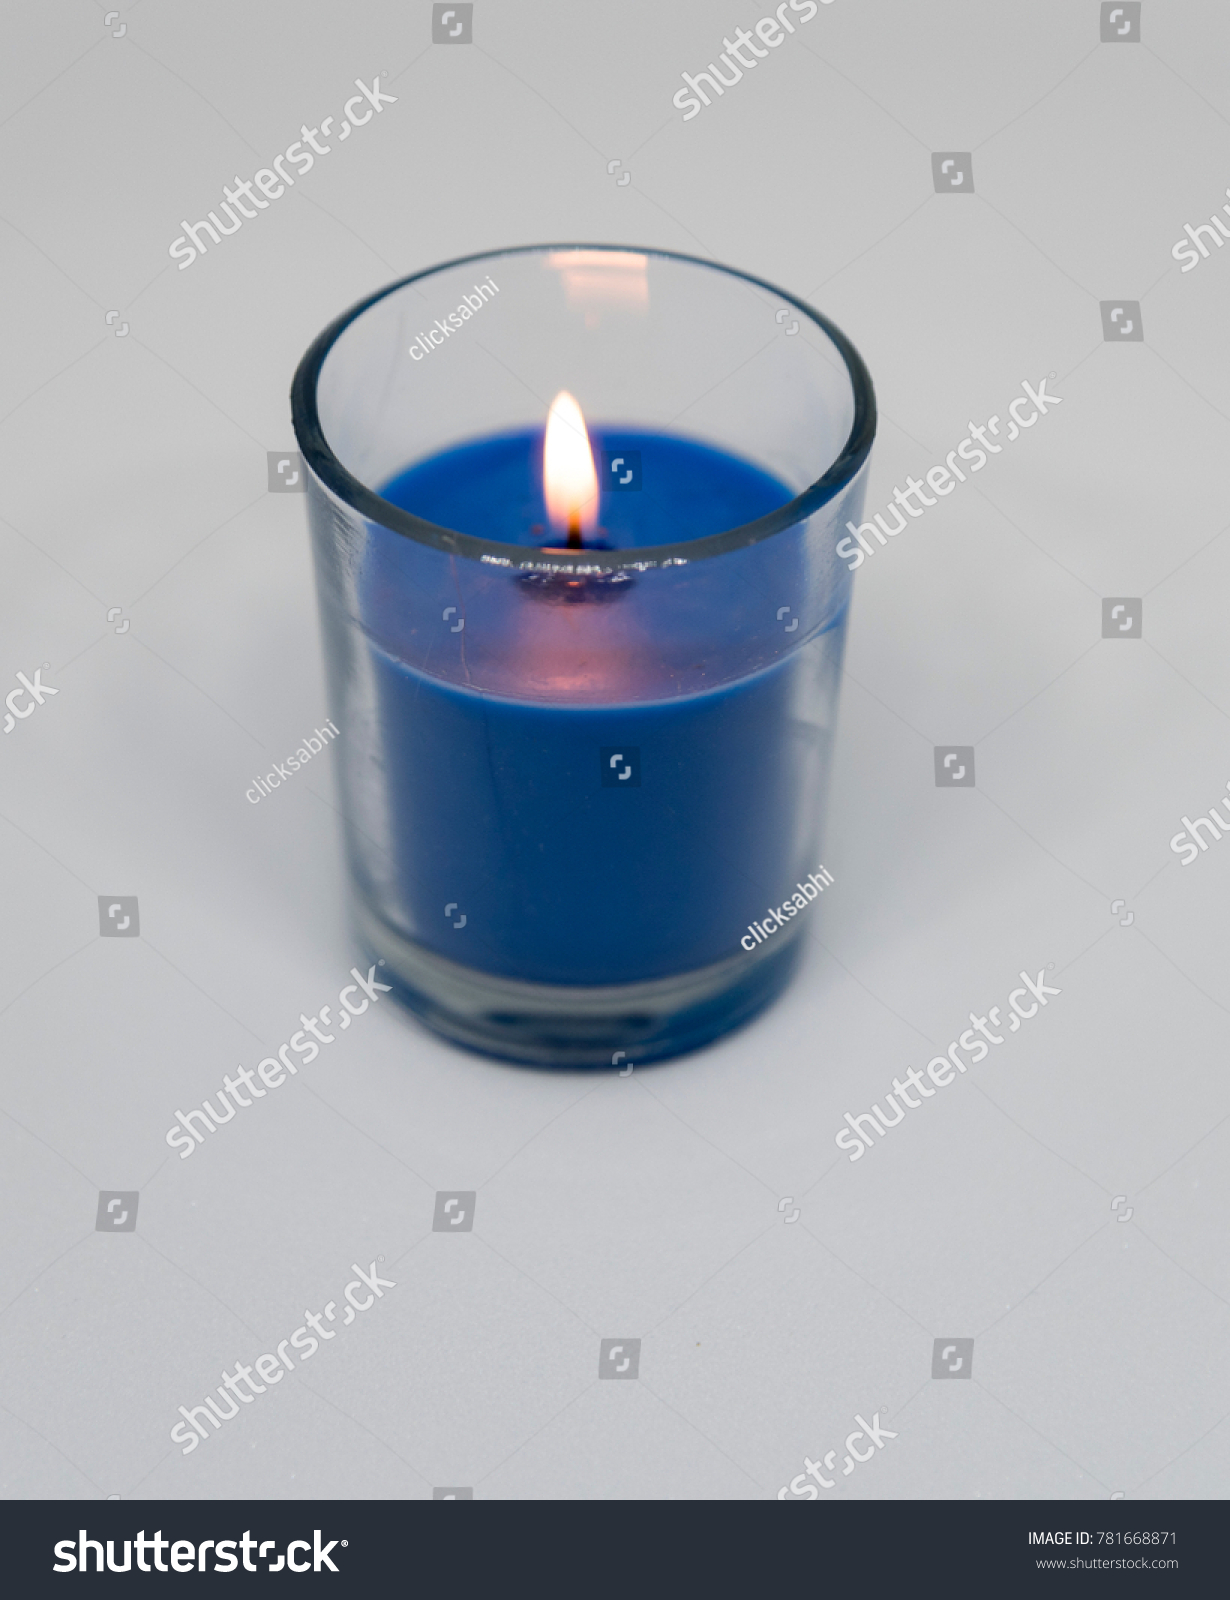 Beautiful Blue Colour Candle On White Stock Photo 781668871 ... for Blue Candle White Background  58cpg